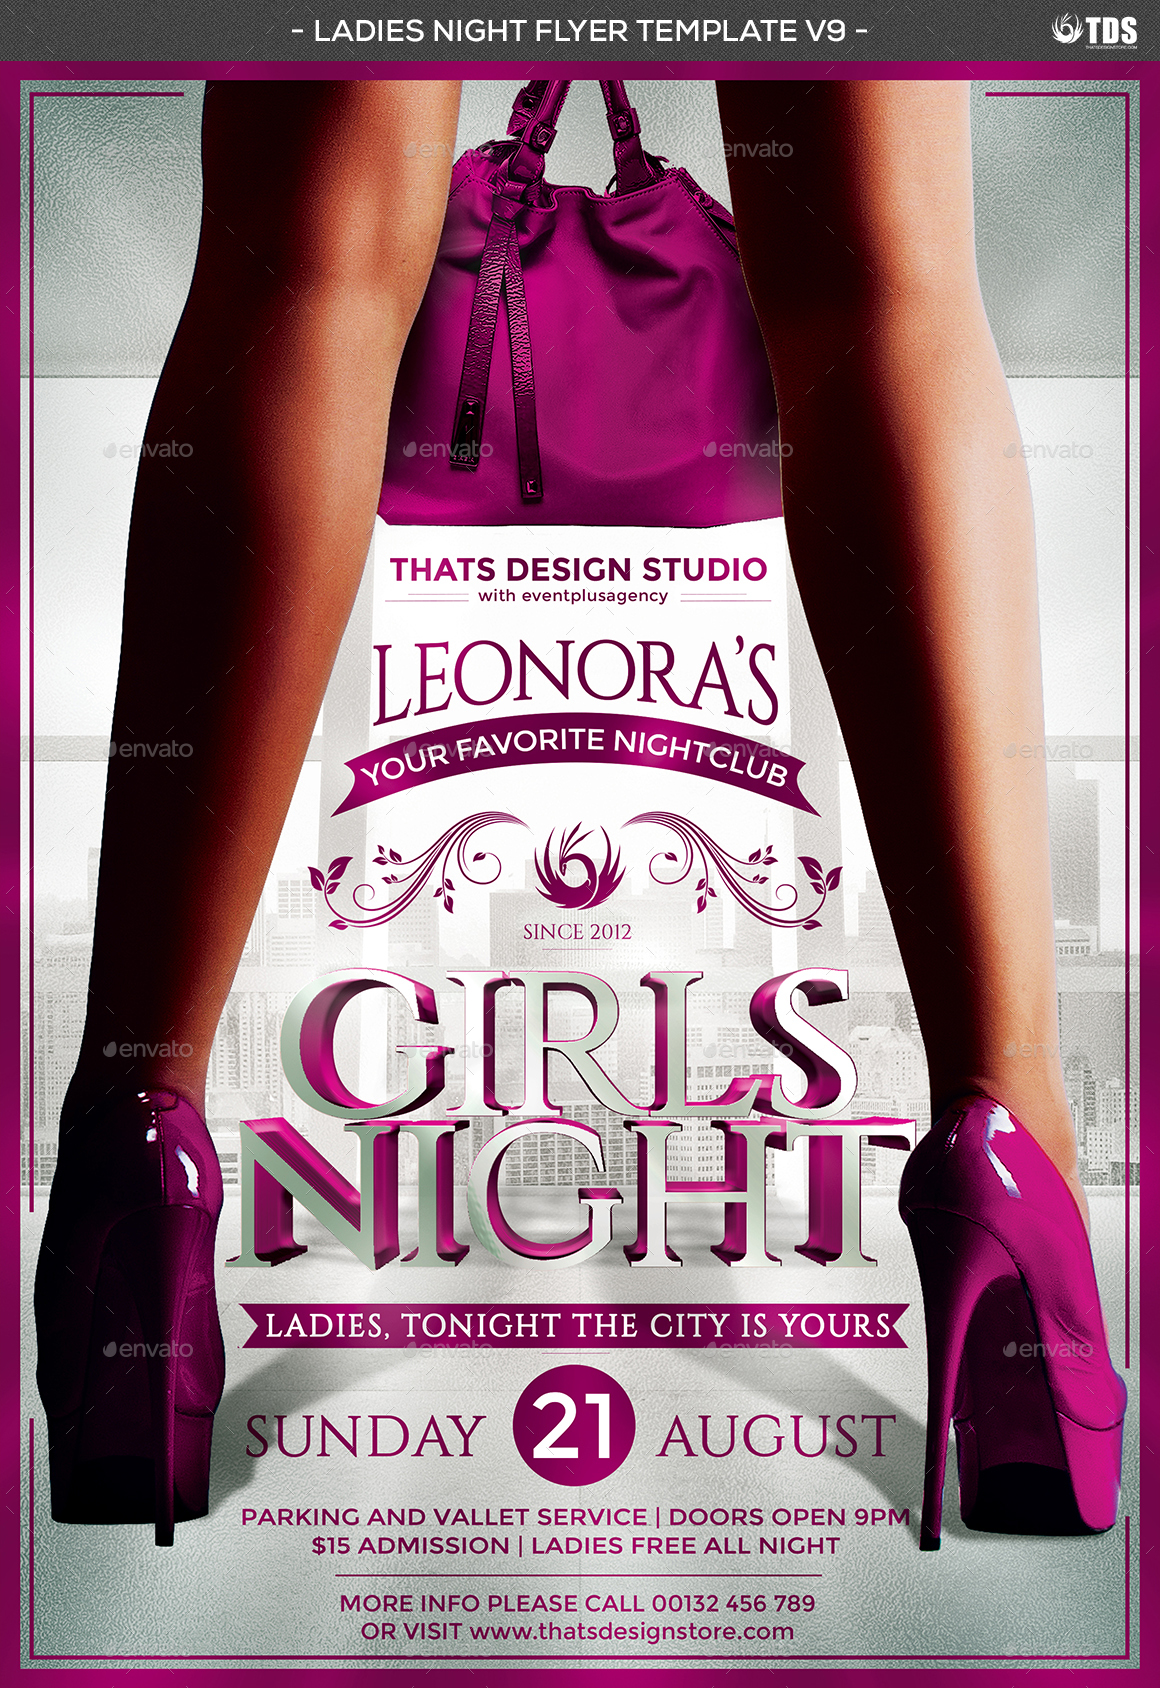 ladies night flyer template v9 by lou606